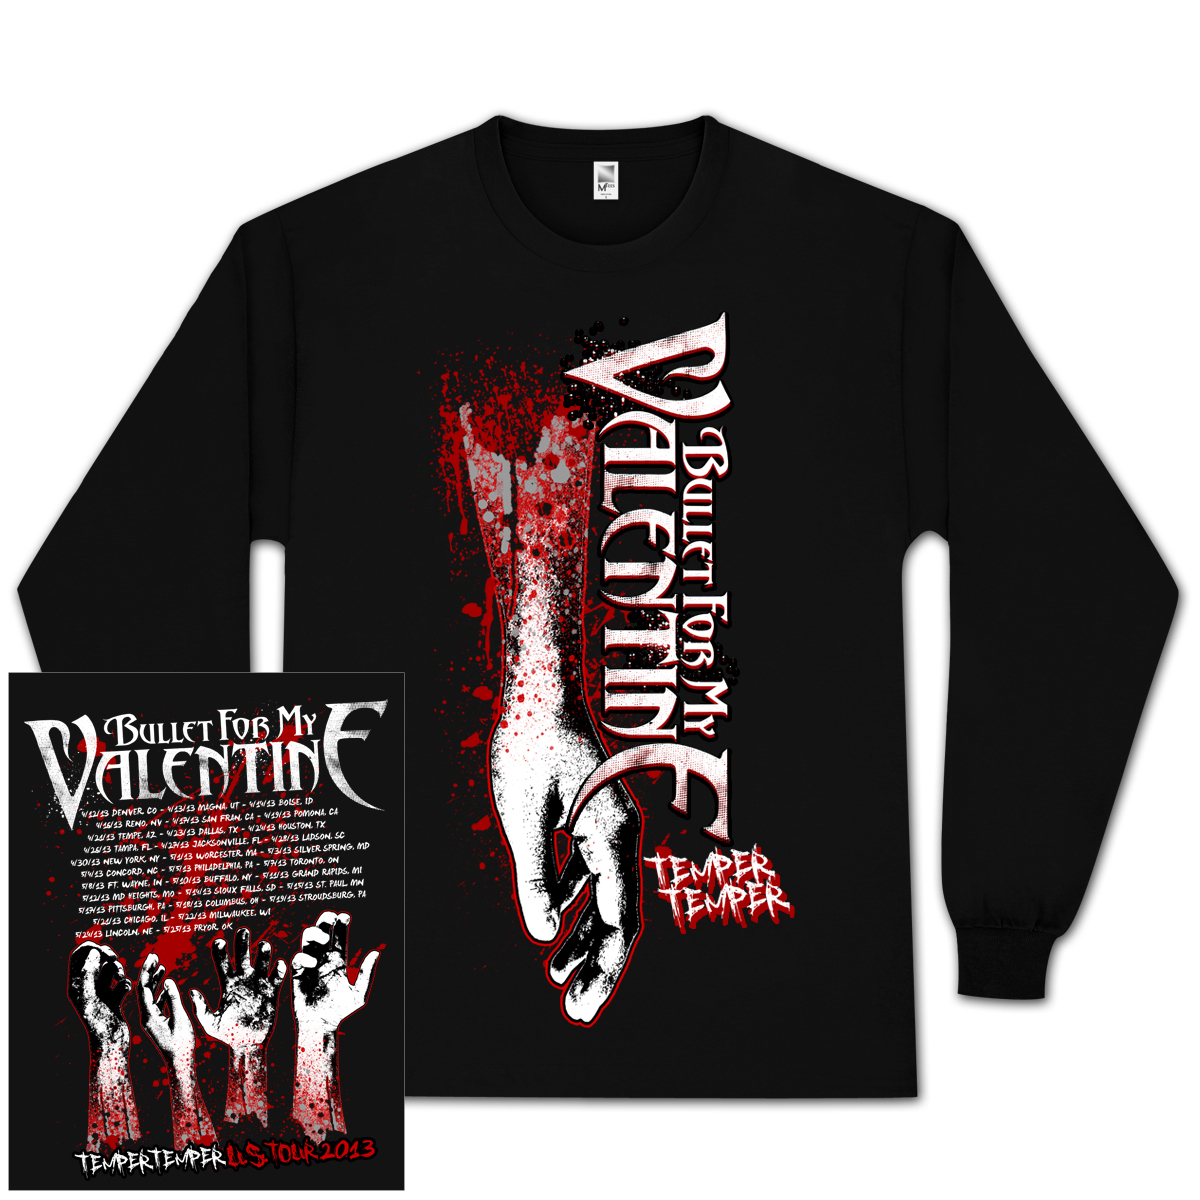 Bullet For My Valentine Bleeding Arms 2013 Tour Long Sleeve Shirt